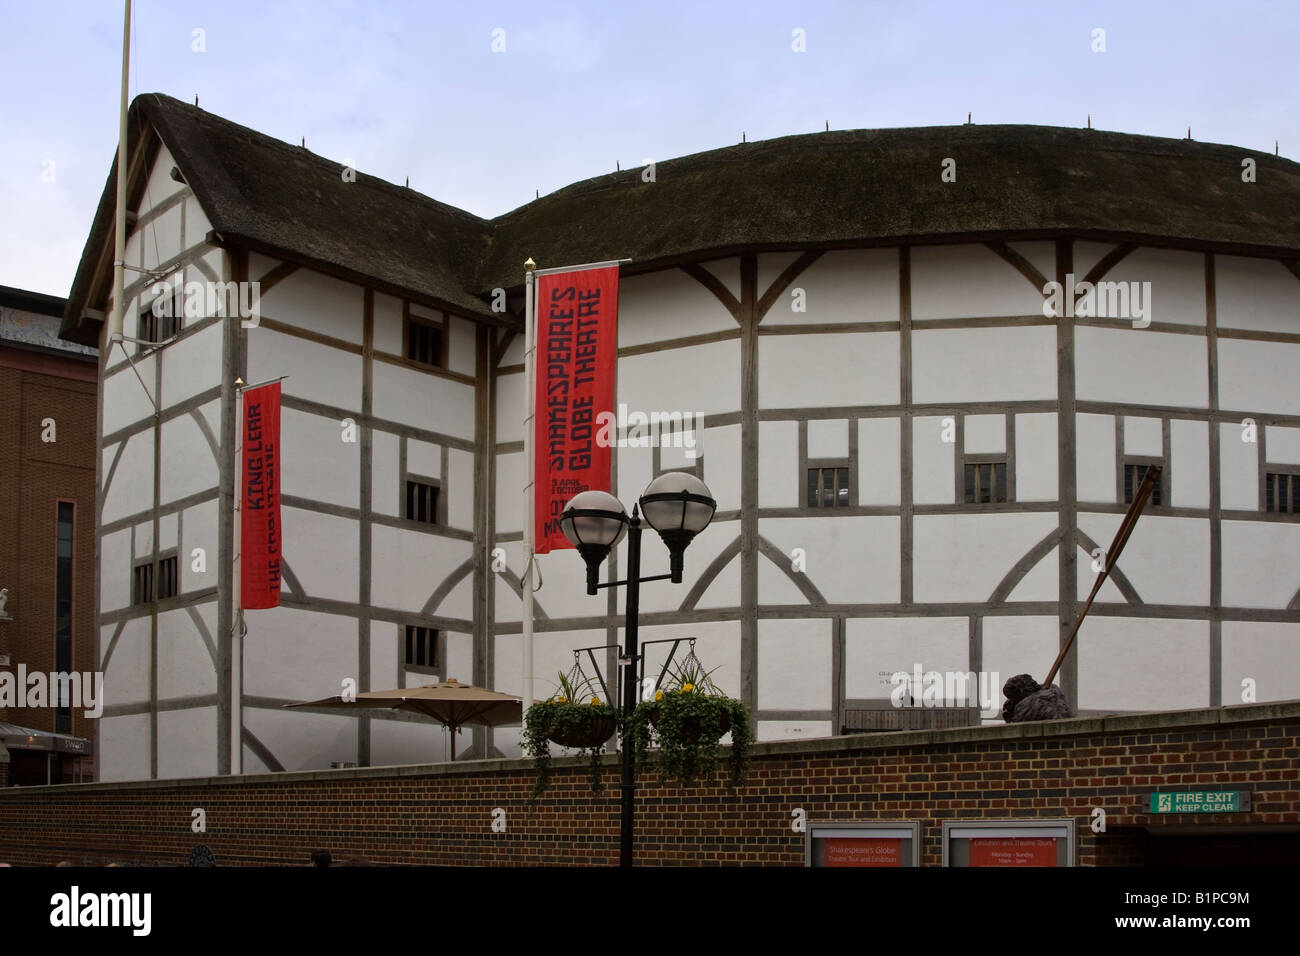 Globe Theatre, London England, a recreation of the original Shakesperian Theatre on the Thames River - Stock Image